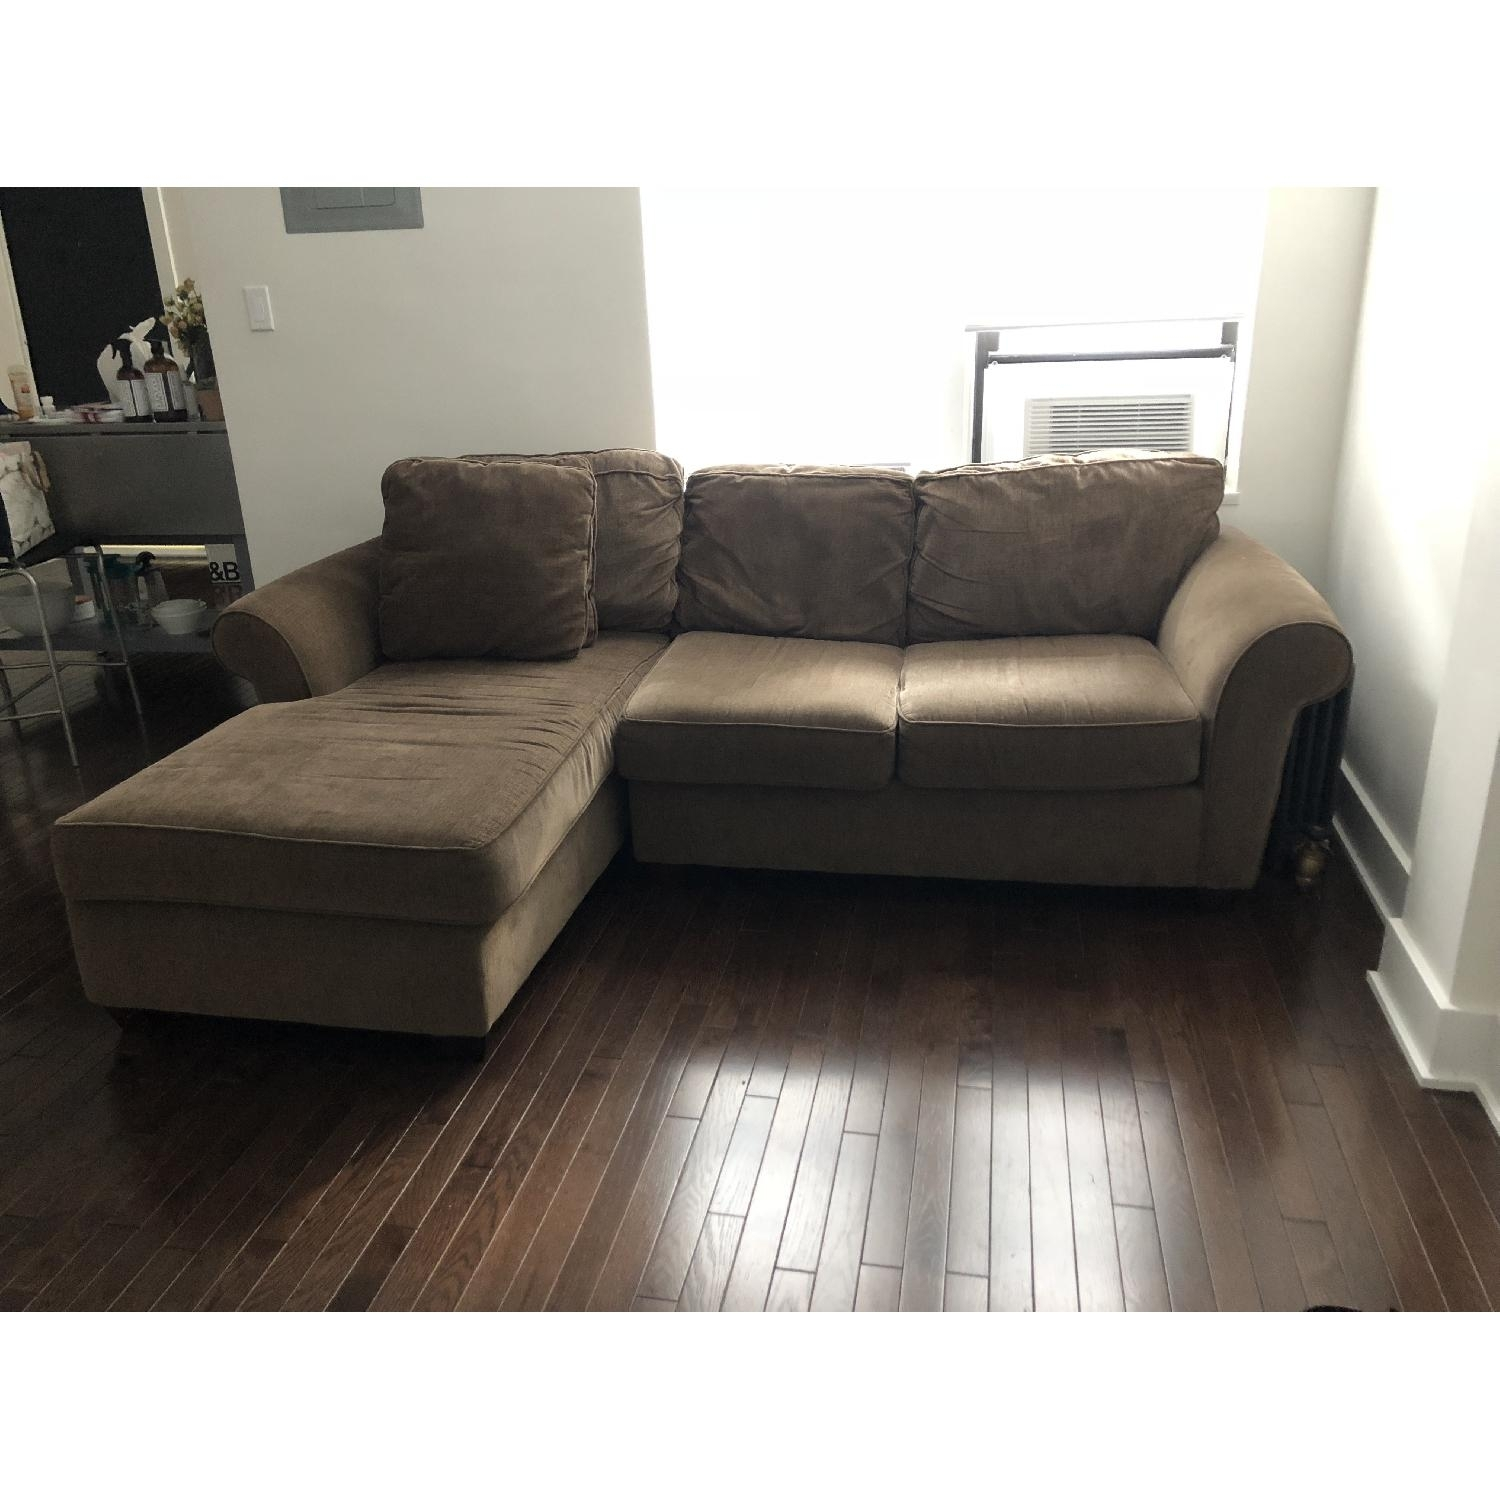 2 Piece Chaise Sectional Sofa | Baci Living Room Inside Tenny Cognac 2 Piece Left Facing Chaise Sectionals With 2 Headrest (View 10 of 25)